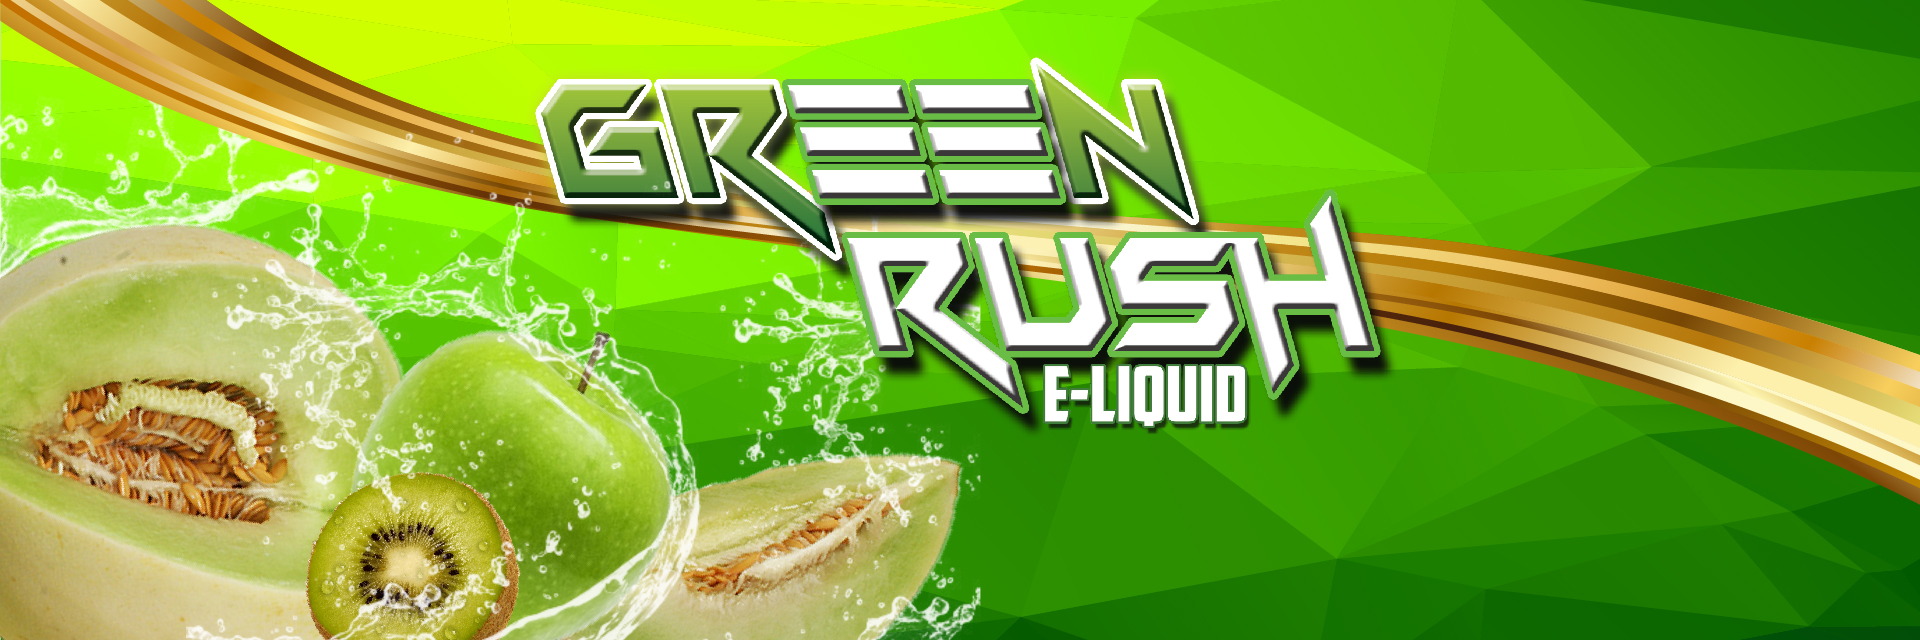 Flavor Vapors | Wholesale E-Liquids | Green Rush